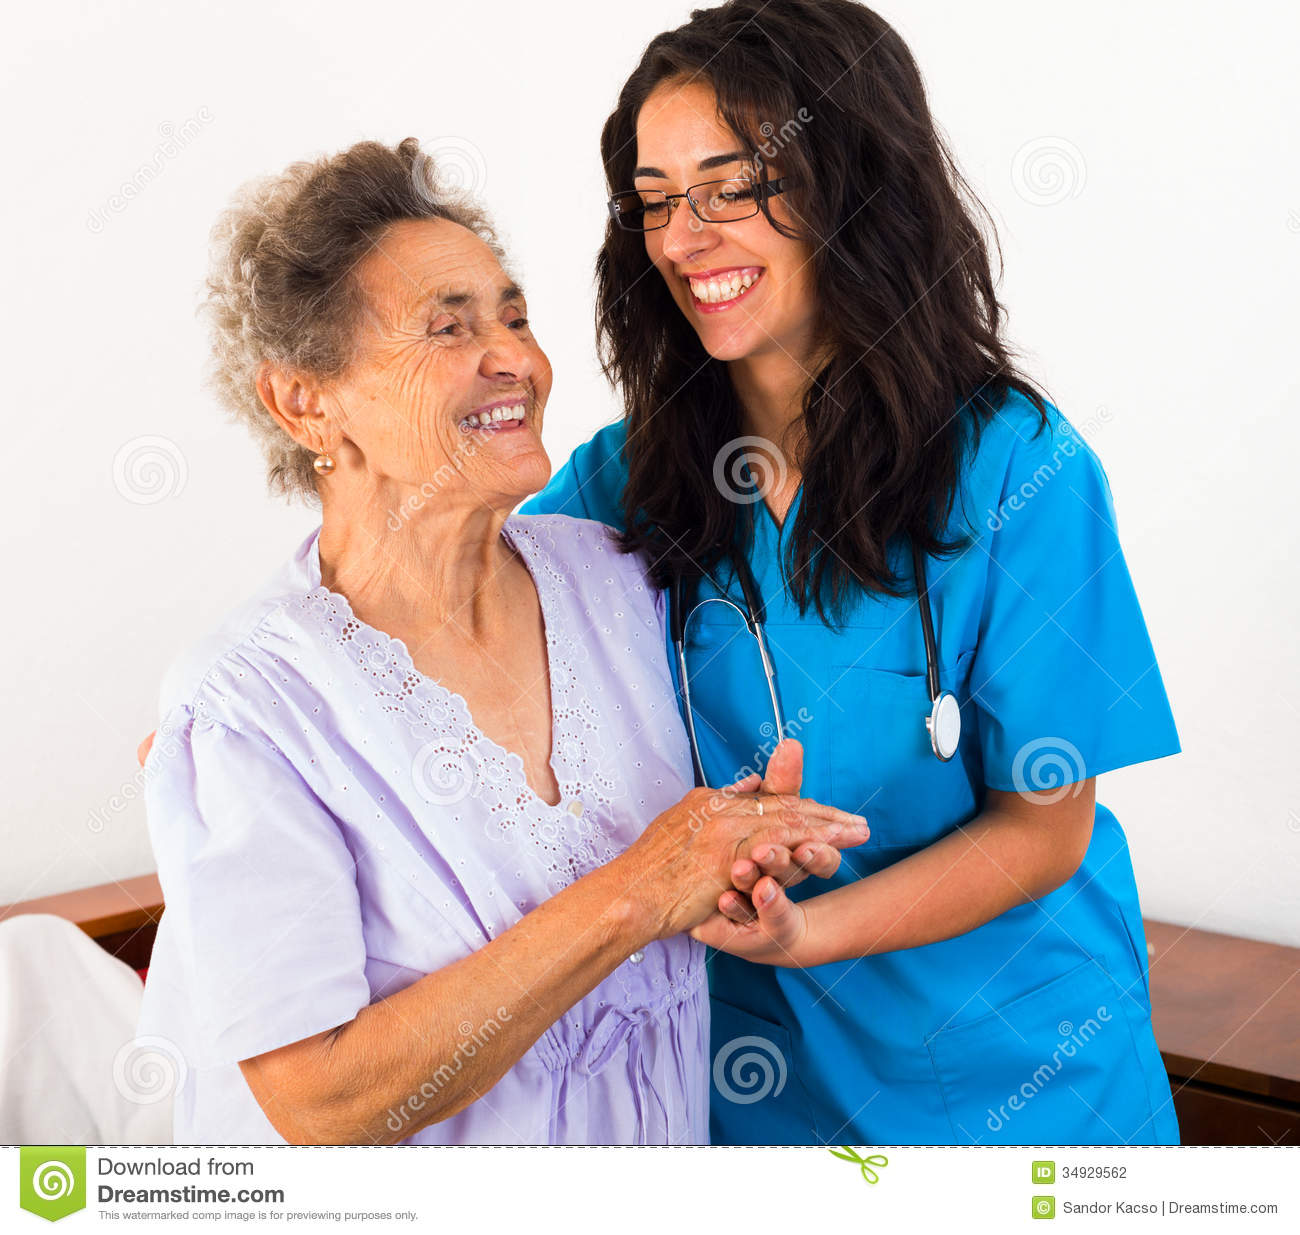 a nurse is instructing the patient care assistants